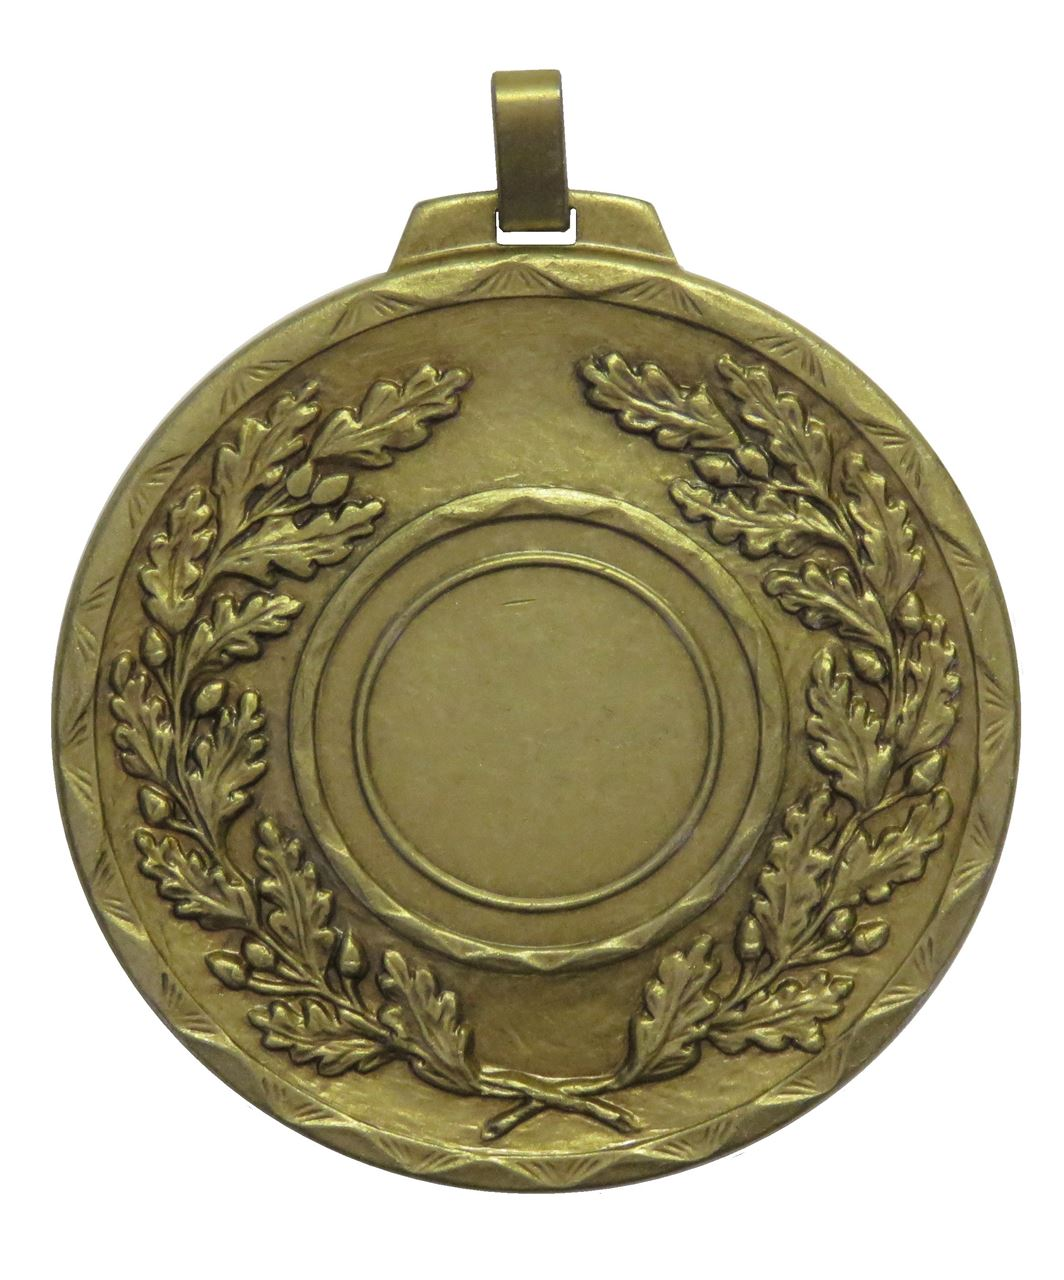 Bronze Quality Classic Wreath Medal (size: 70mm) - 5595E